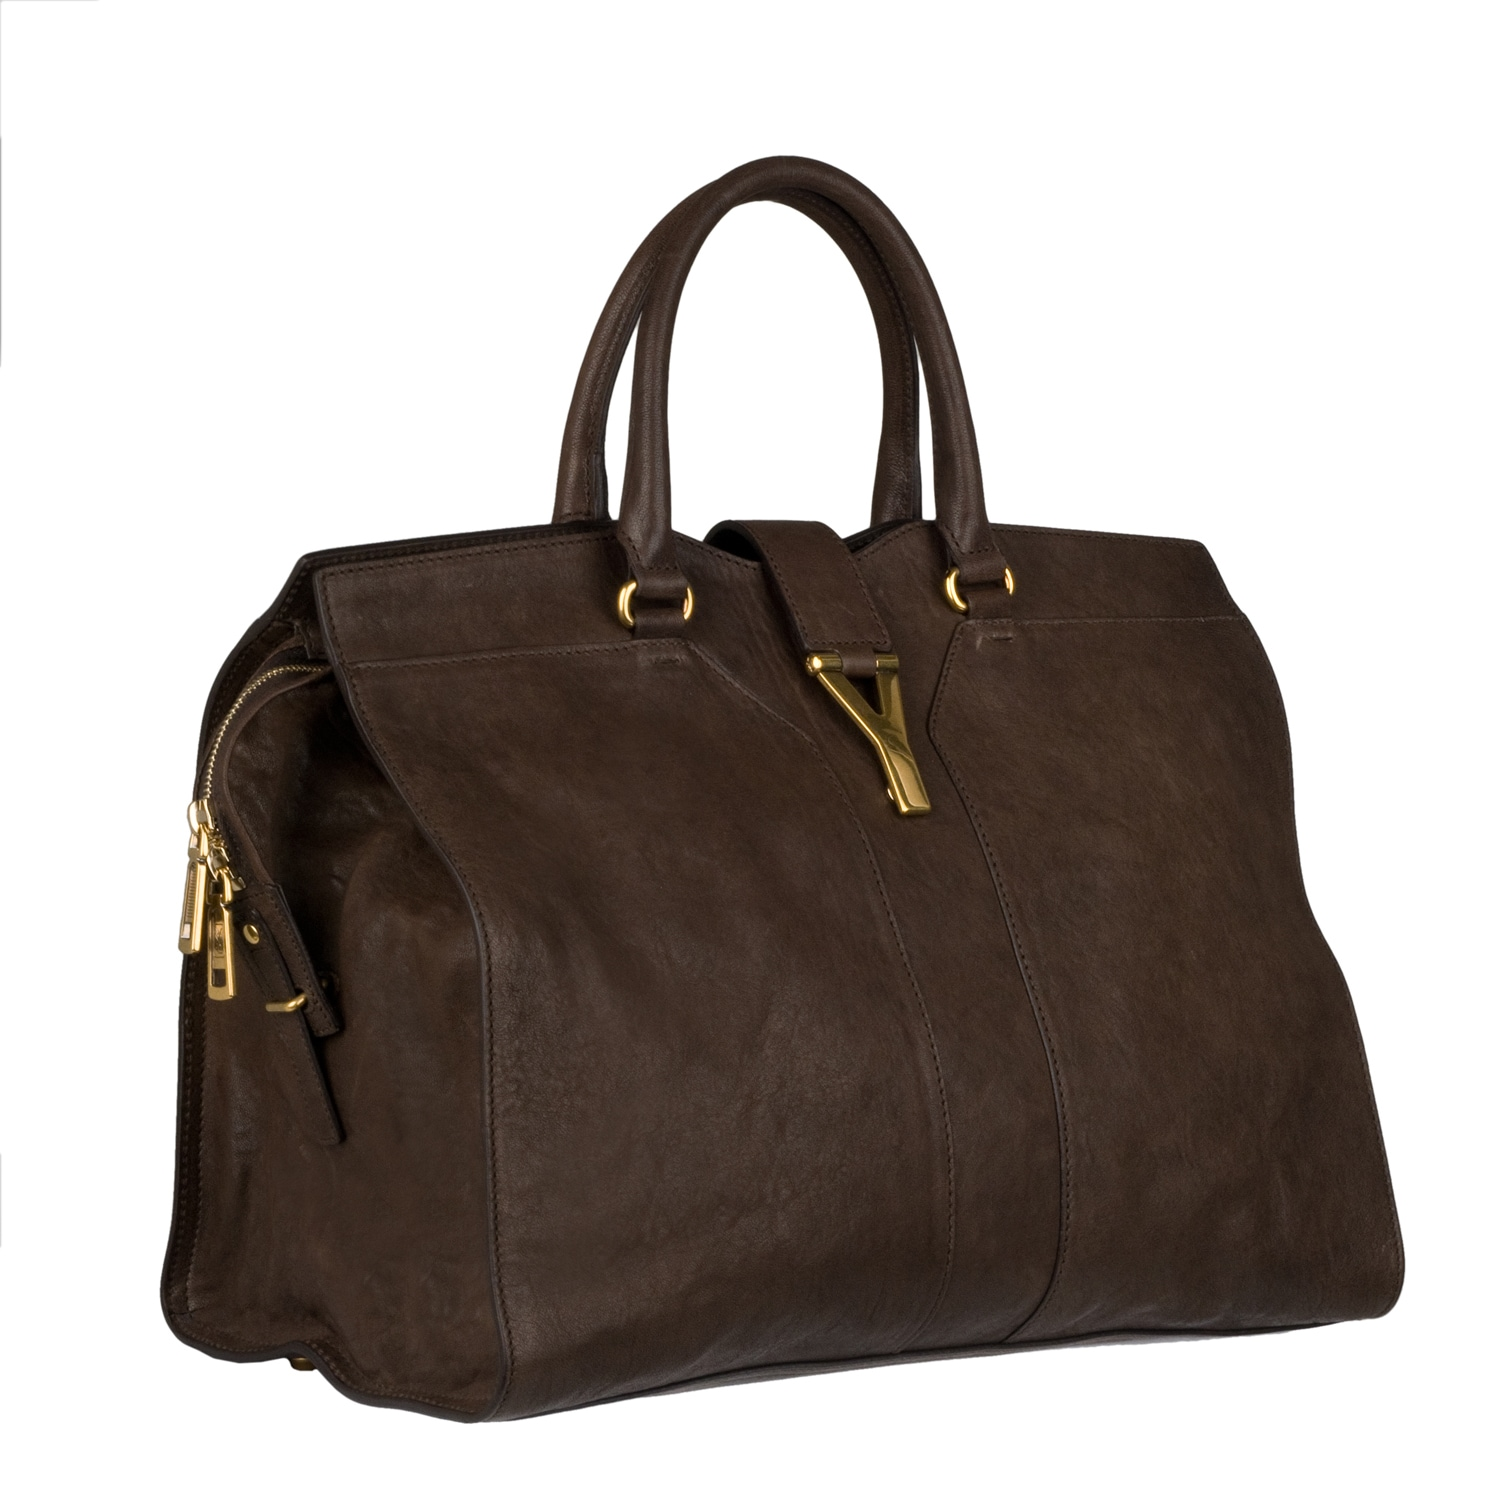 Shop Yves Saint Laurent  Cabas Chyc  Large Brown Leather Tote Bag - Ships  To Canada - Overstock.ca - 7307723 5b9ac2d443fa8